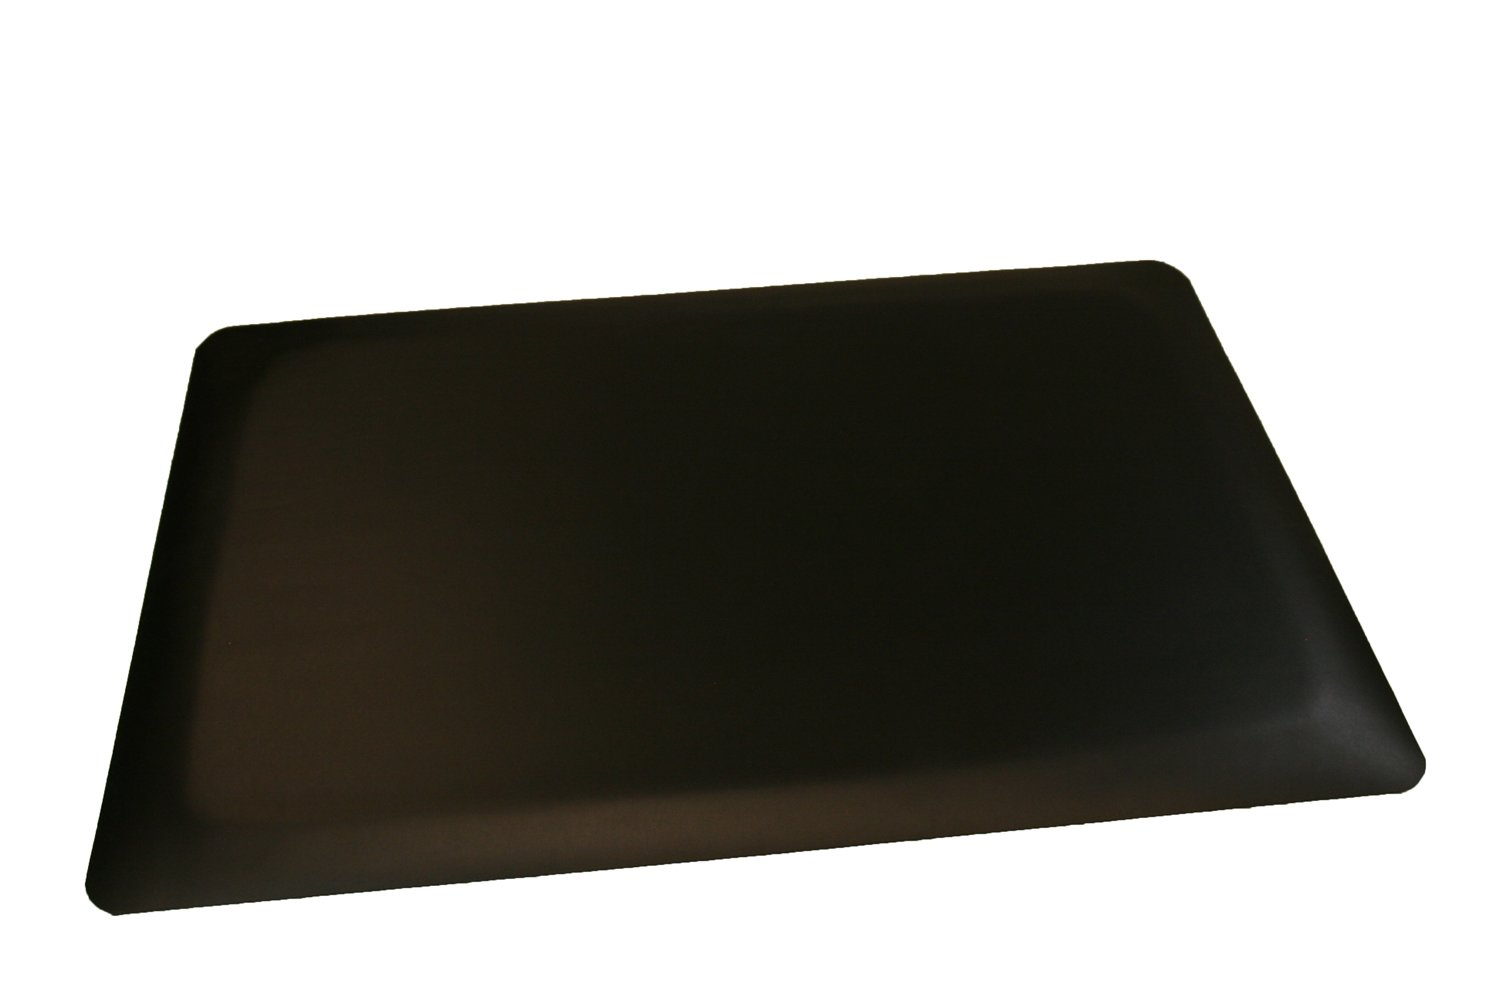 Rhino Mats CS330 Conductive Smooth Top Work Surface and Runner Mat, 3' Width x 30' Length x 3/32'' Thickness, Black